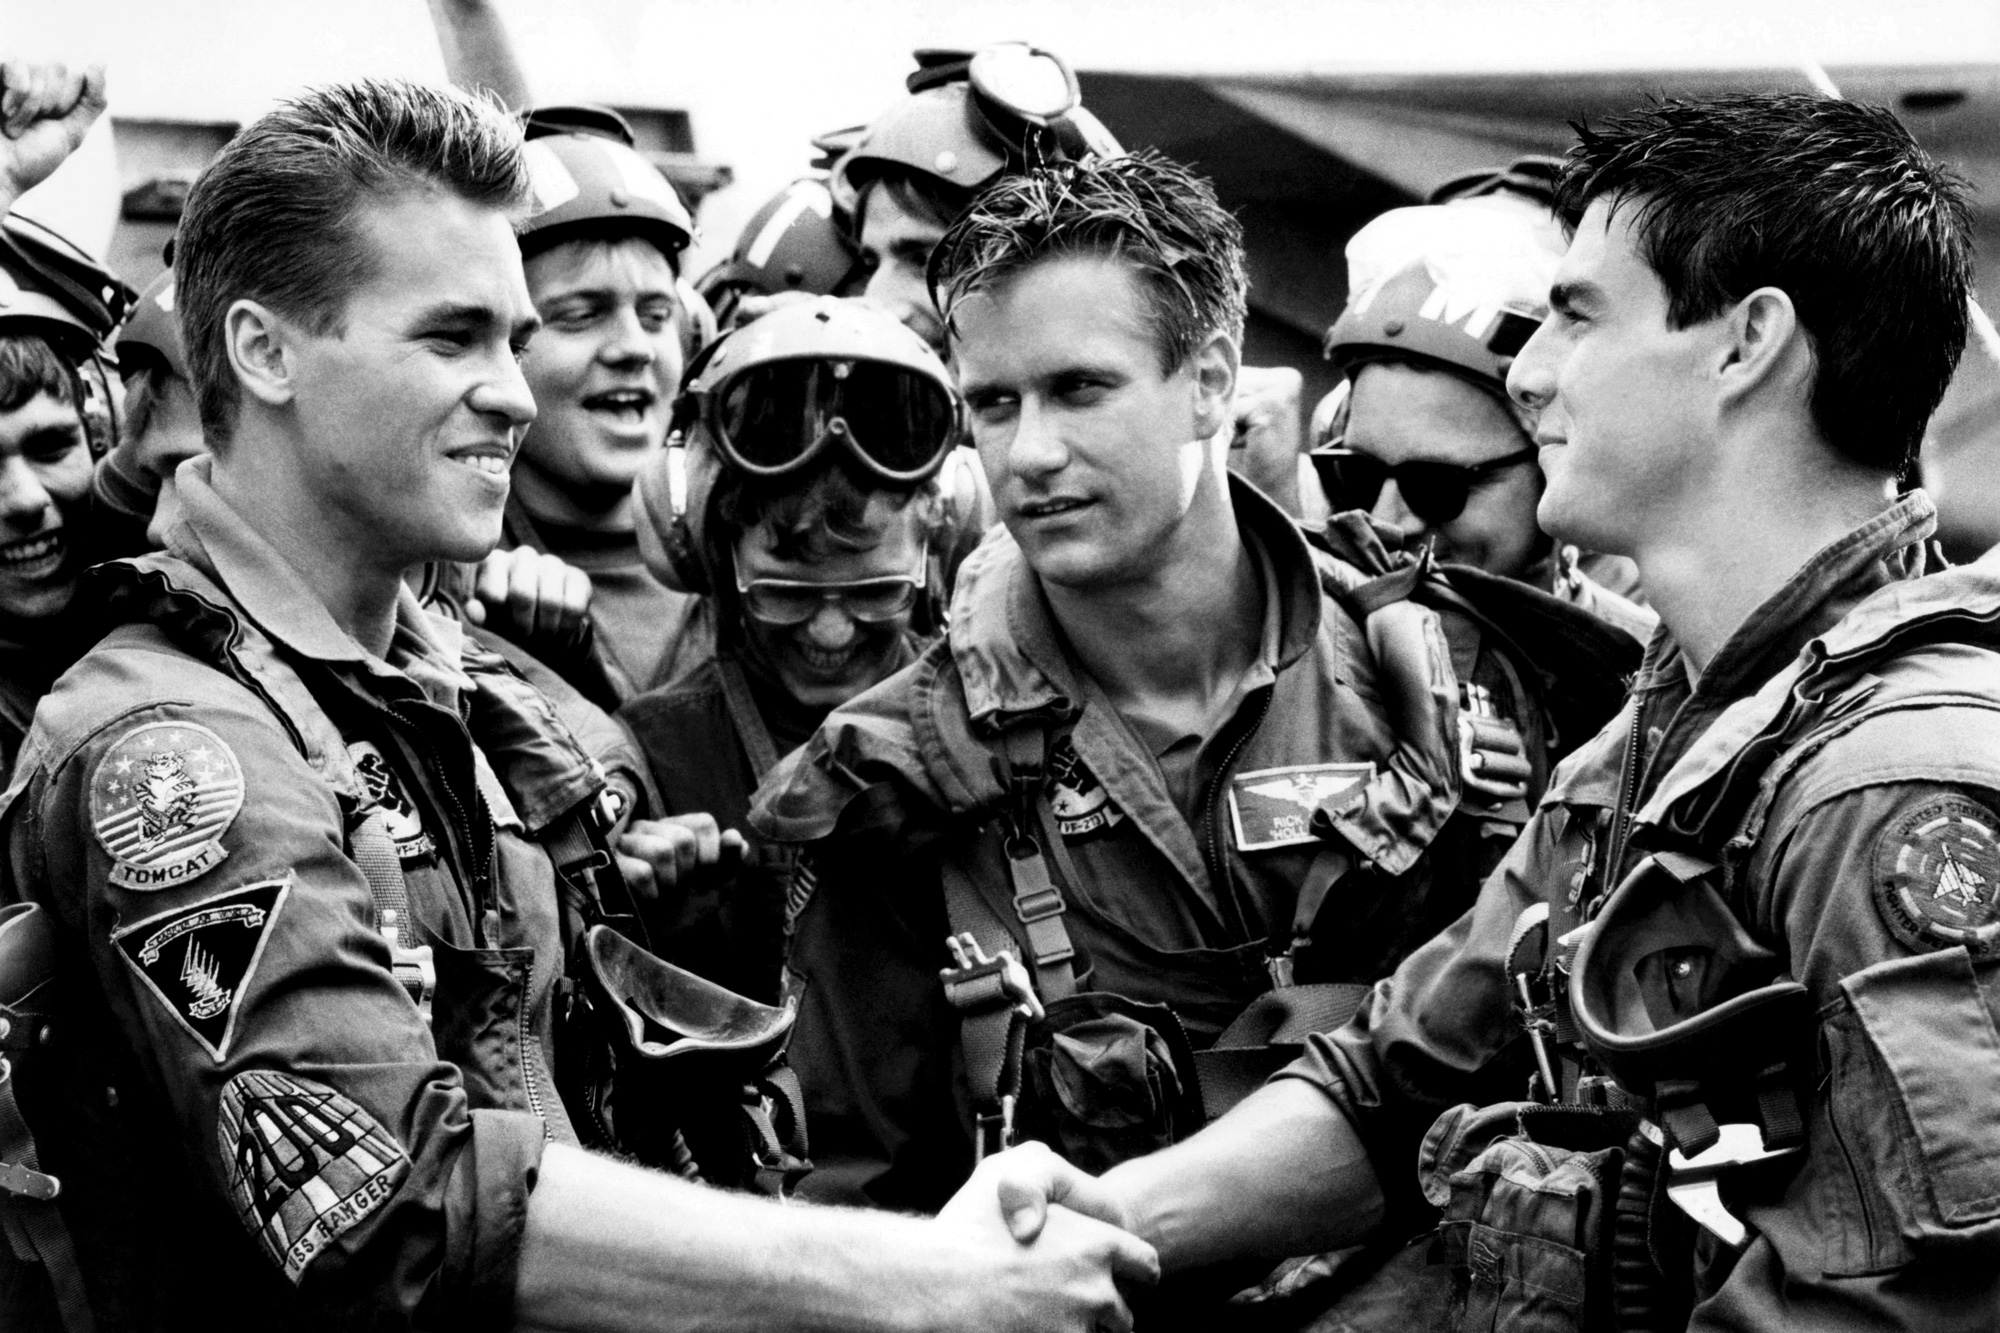 TOP GUN, from left, Val Kilmer, Barry Tubb, Tom Cruise, 1986, ©Paramount/courtesy Everett Collection